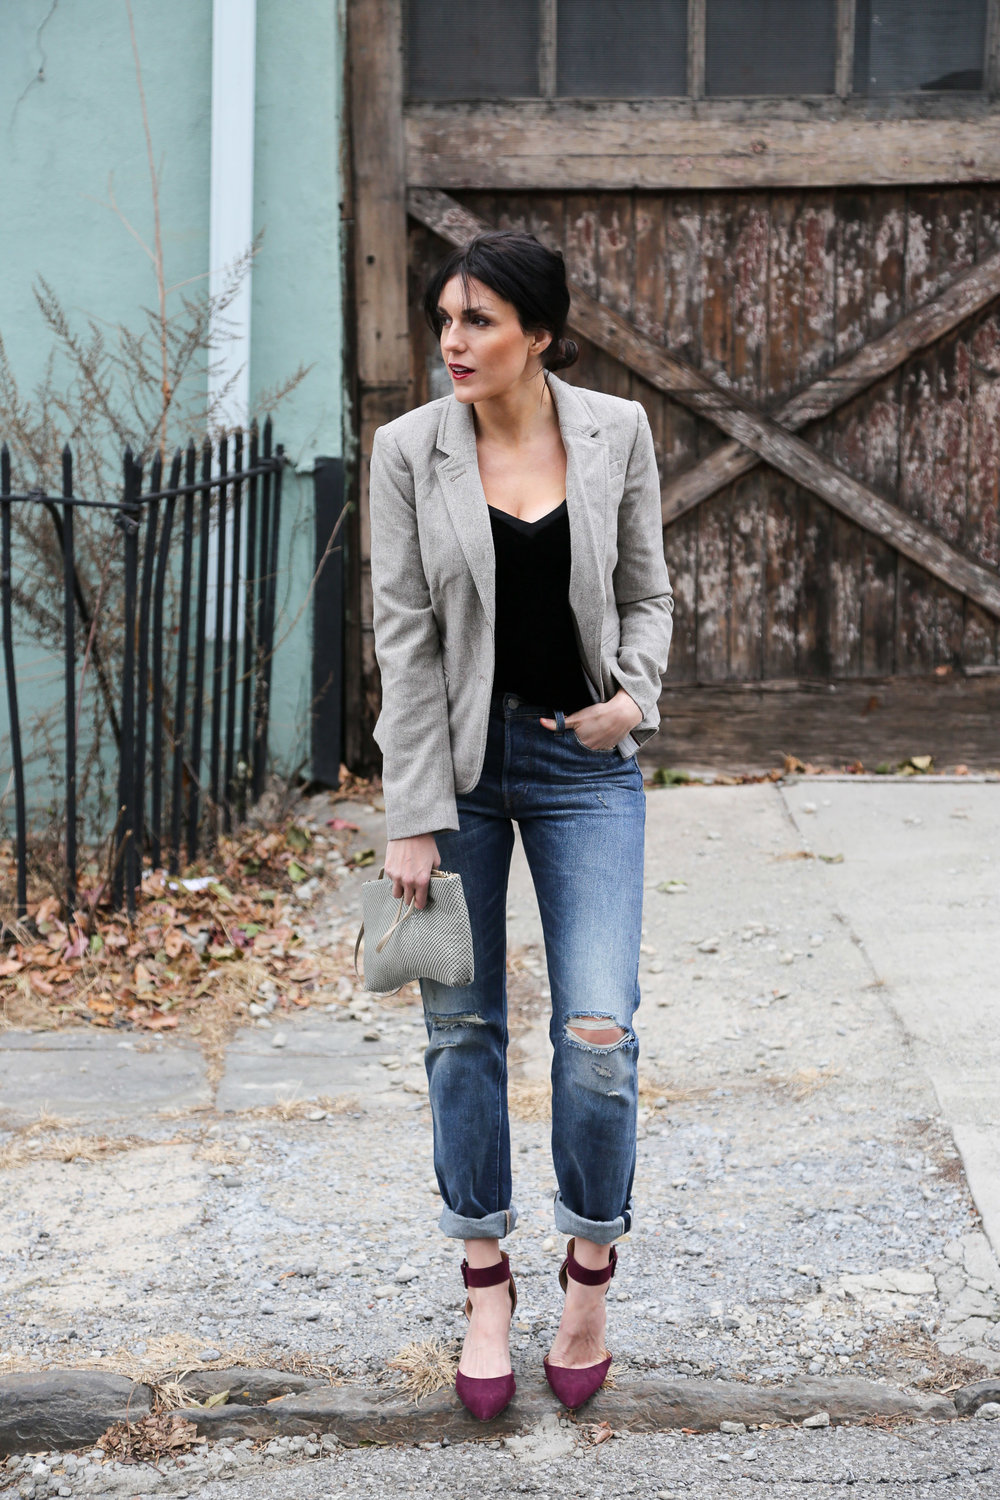 BUSINESS CASUAL - ...a more relaxed way to wear velvet and sequins, perfect for an after-work happy hour or grabbing drinks with friends